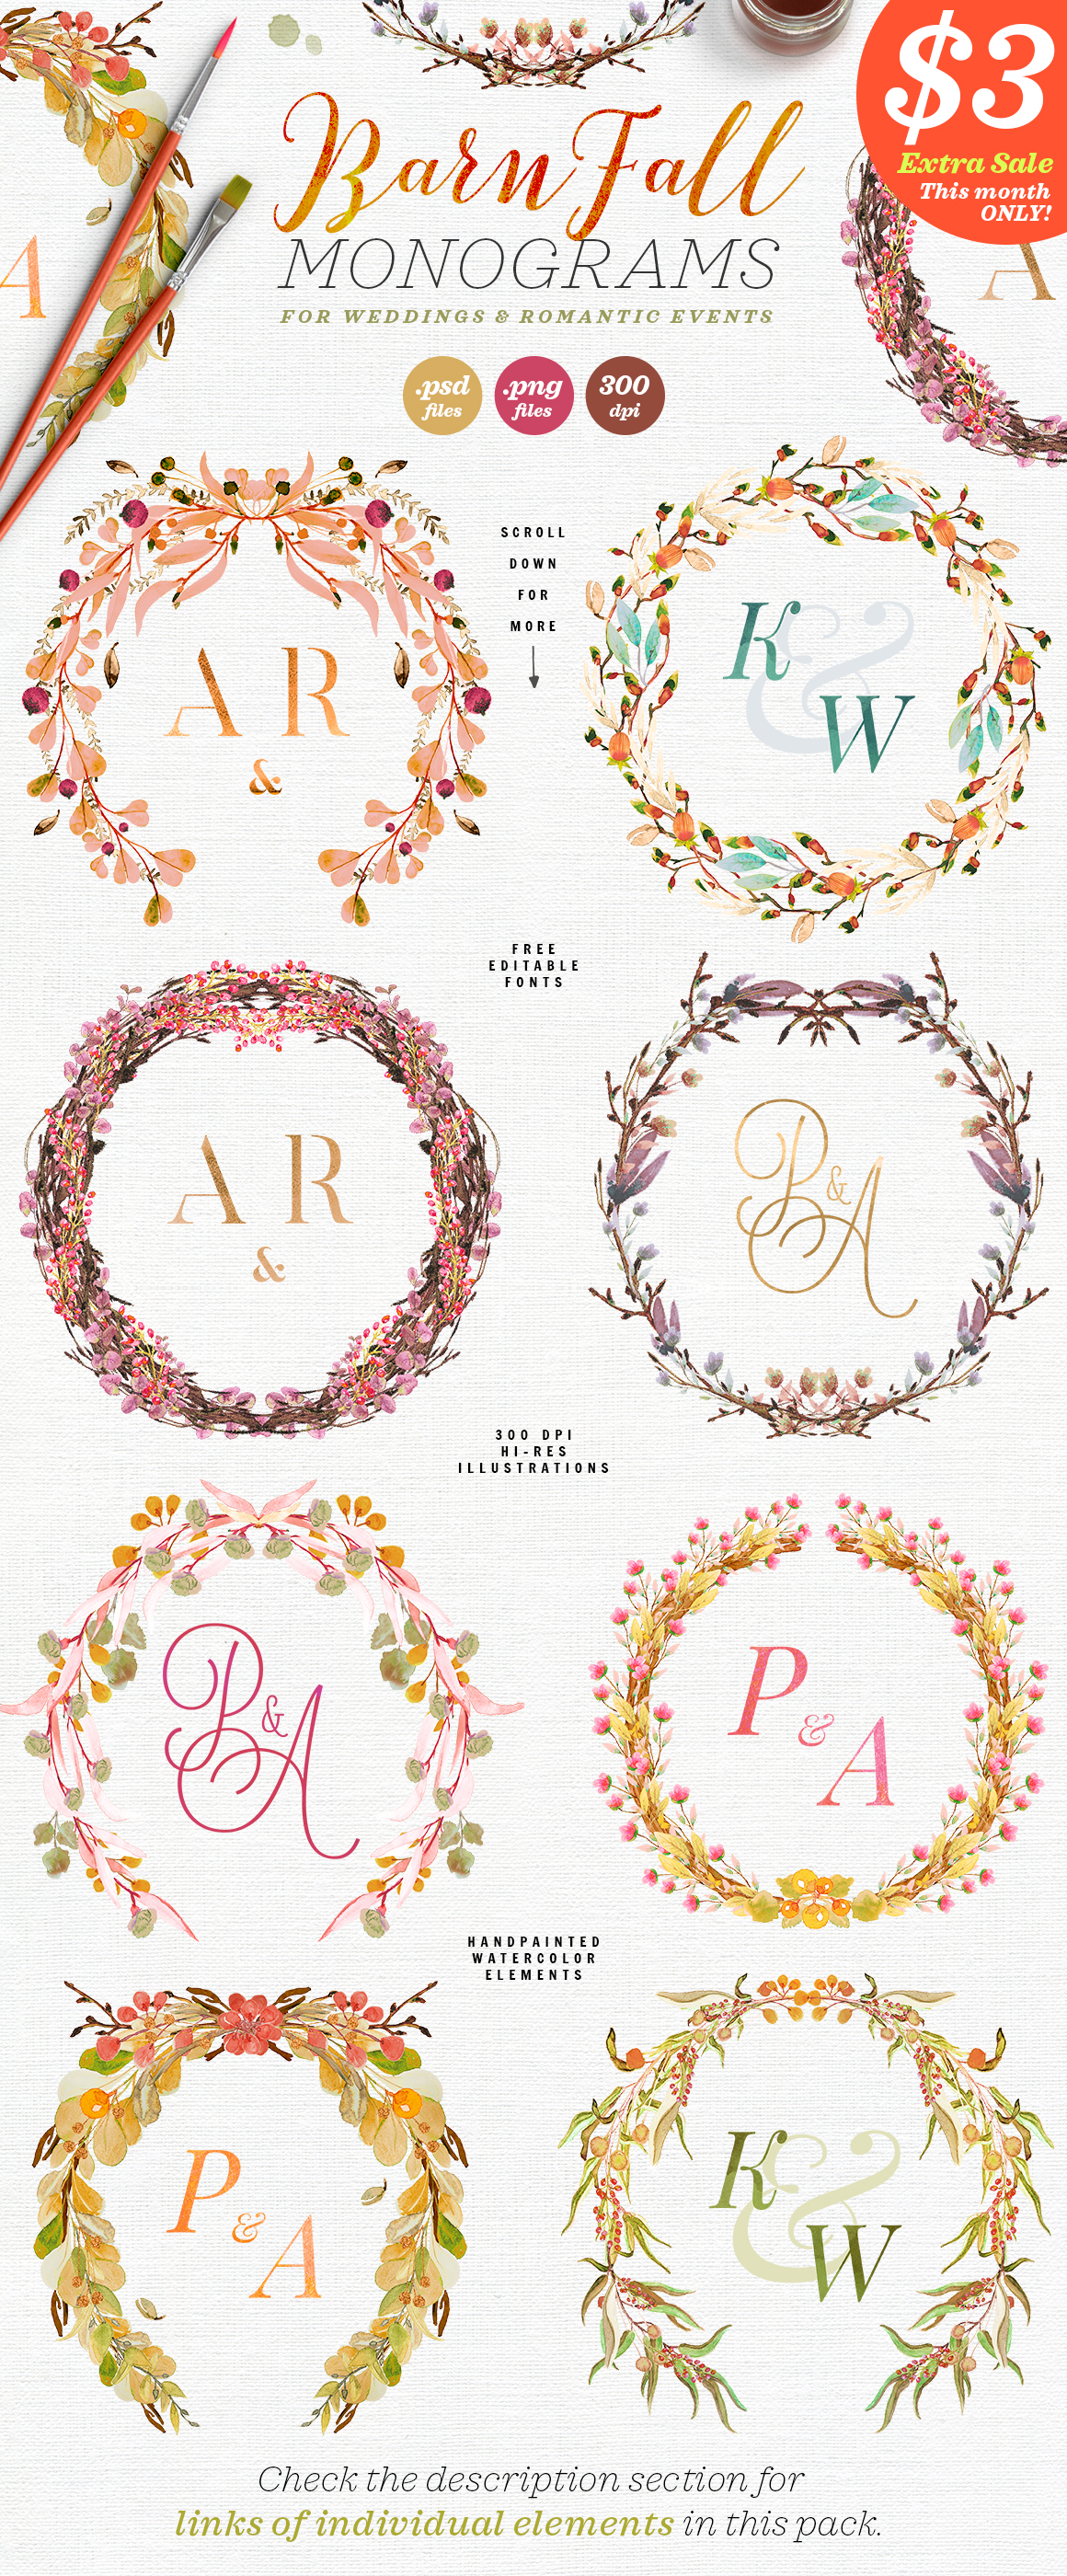 Download Free 8 Barn Fall Wedding Monograms Vii Graphic By Lavie1blonde for Cricut Explore, Silhouette and other cutting machines.